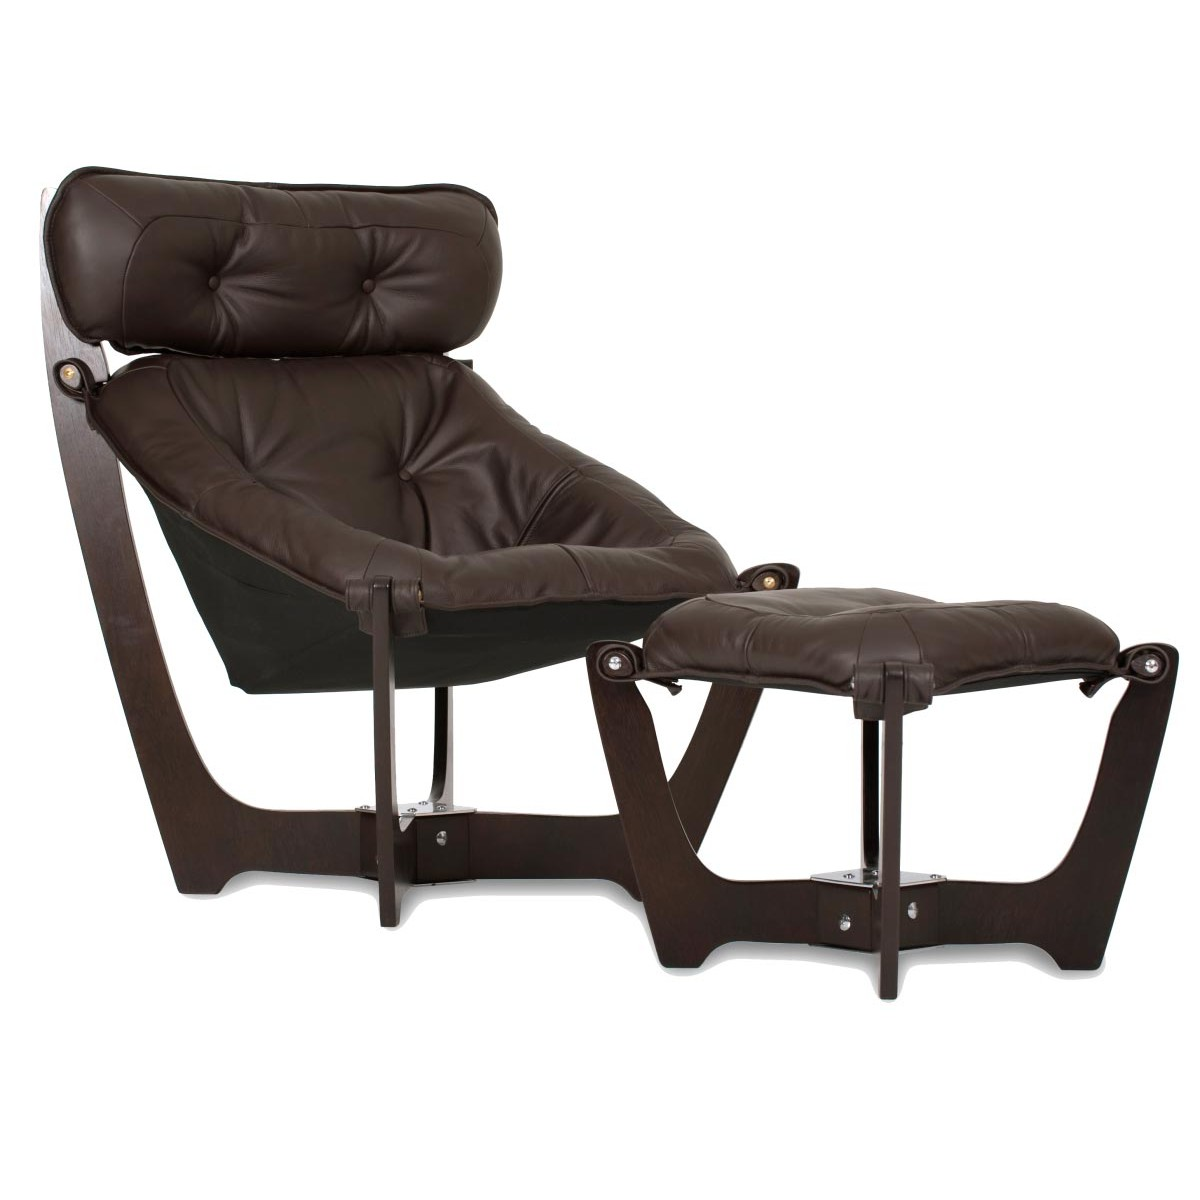 Img Luna Leather High Back Chair From 717 75 By Img